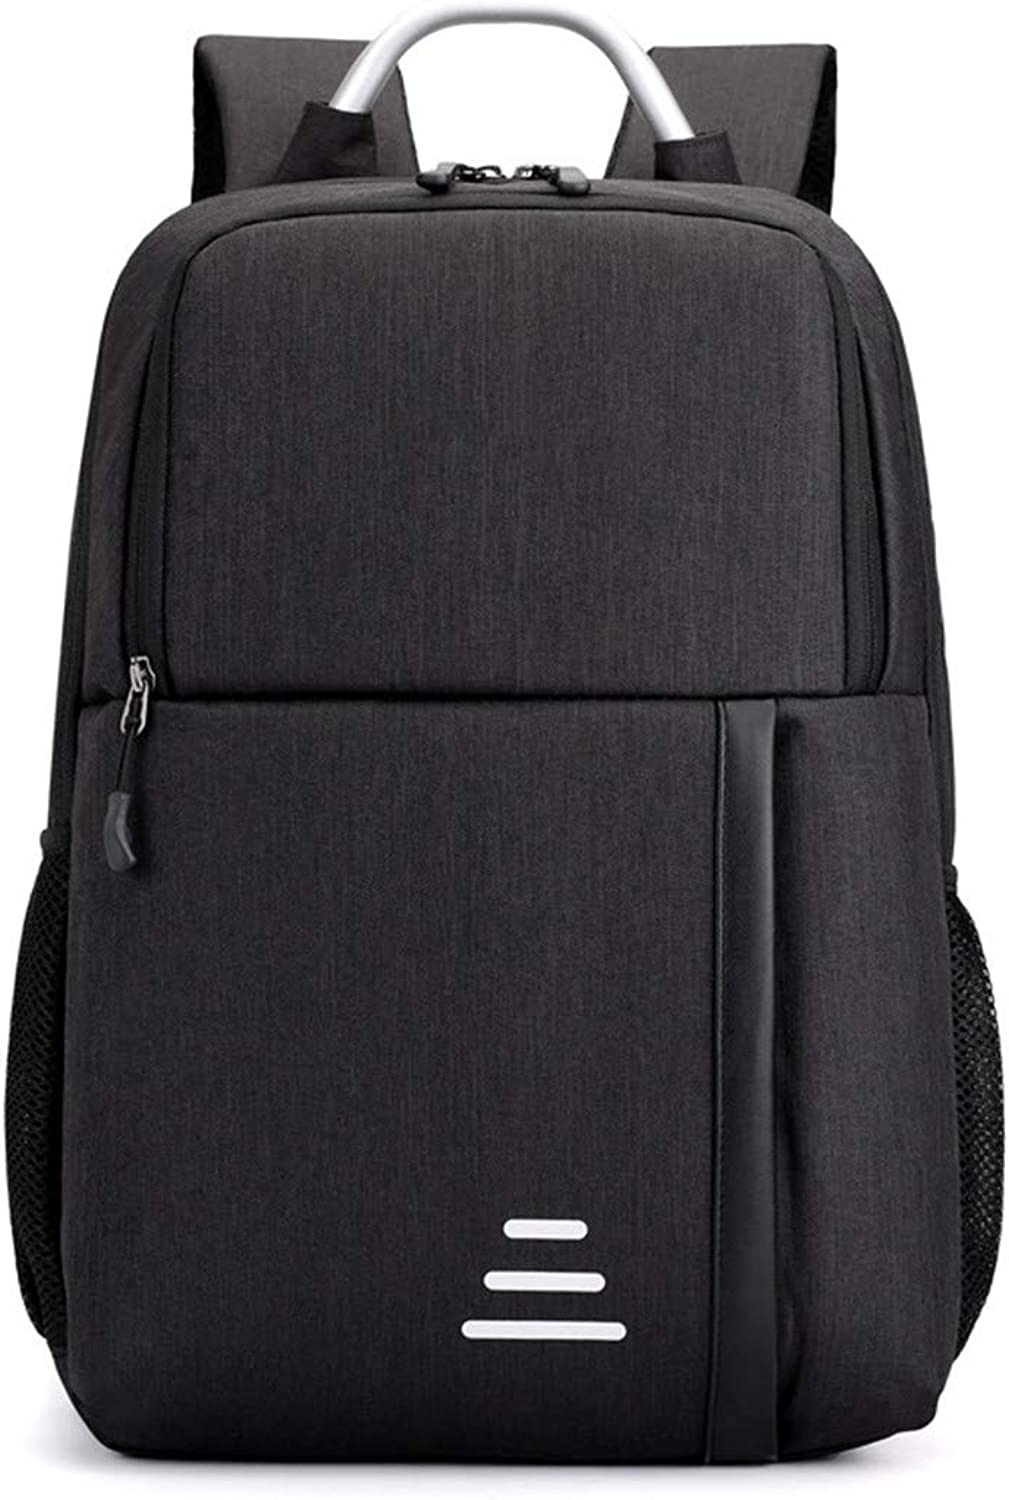 Laptop Backpack Computer with USB Charging Port Business Work Travel Backpack for Men Fits Water Resistant Bookbag College School